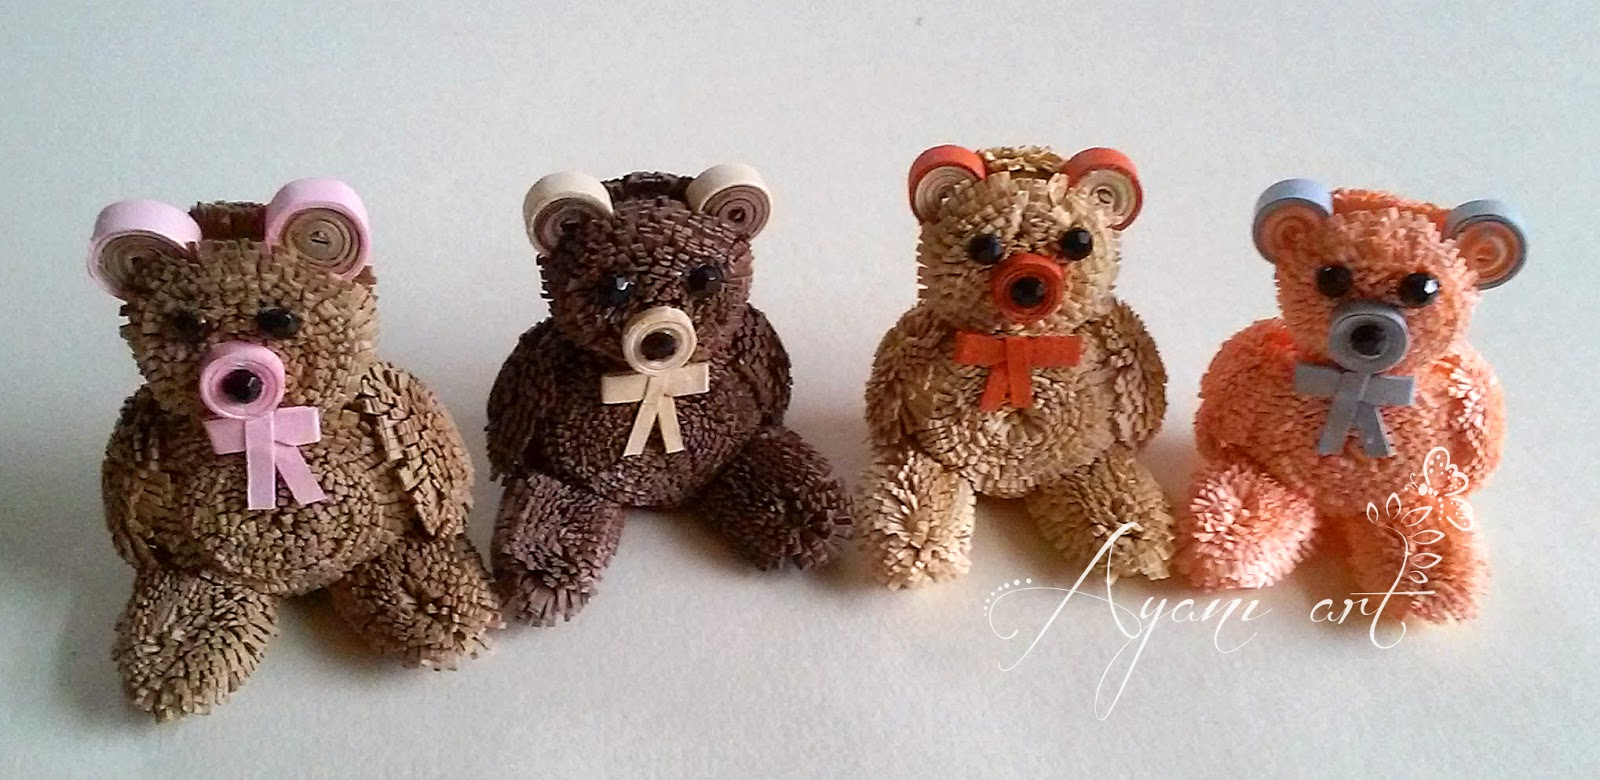 Ayani Art: Quilling Teddy Bears